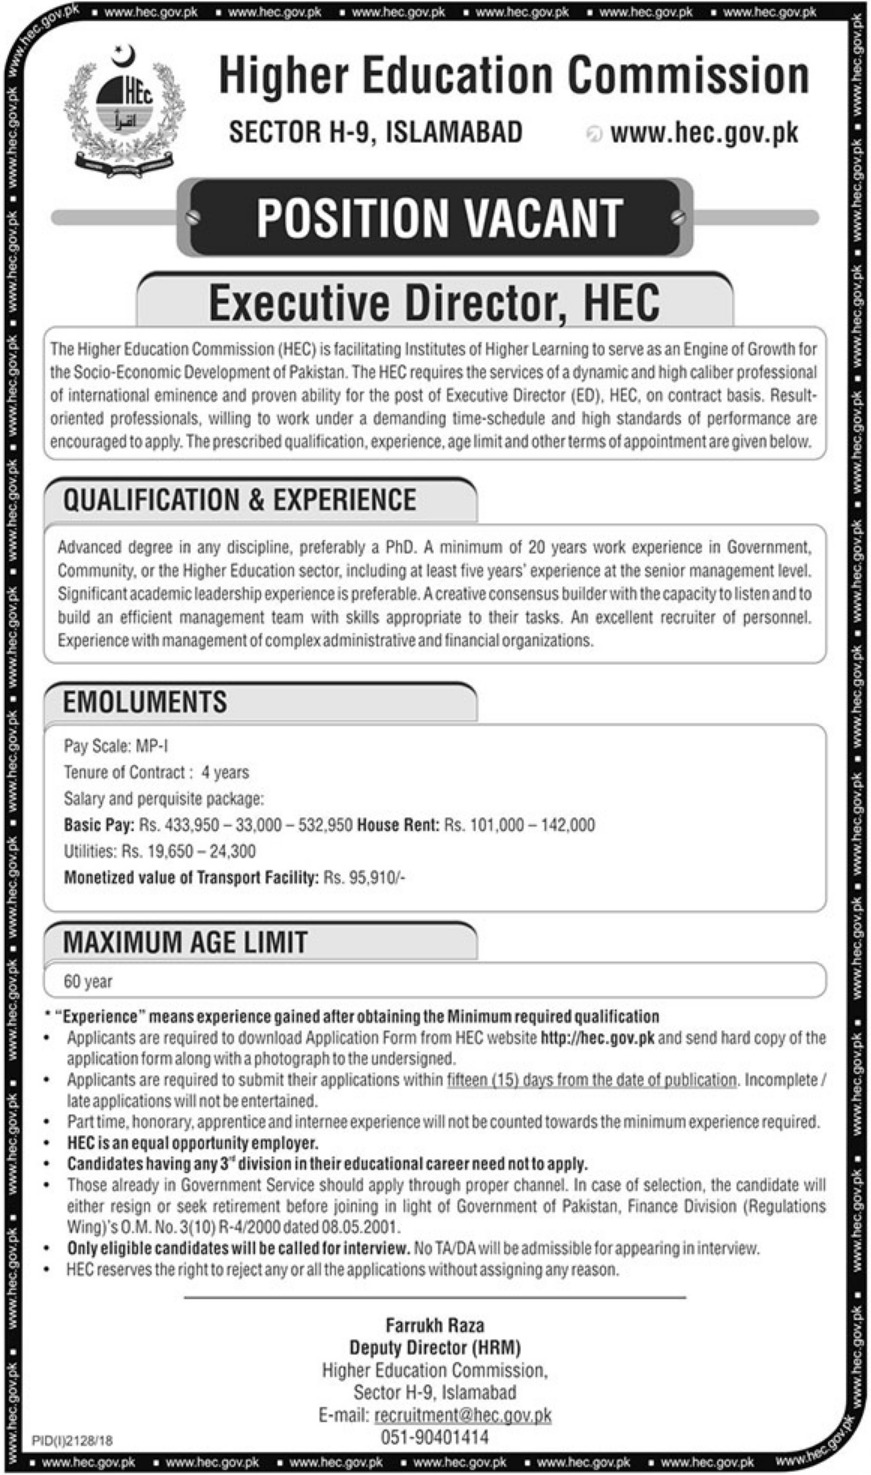 HEC Islamabad Pakistan Jobs Latest 2018